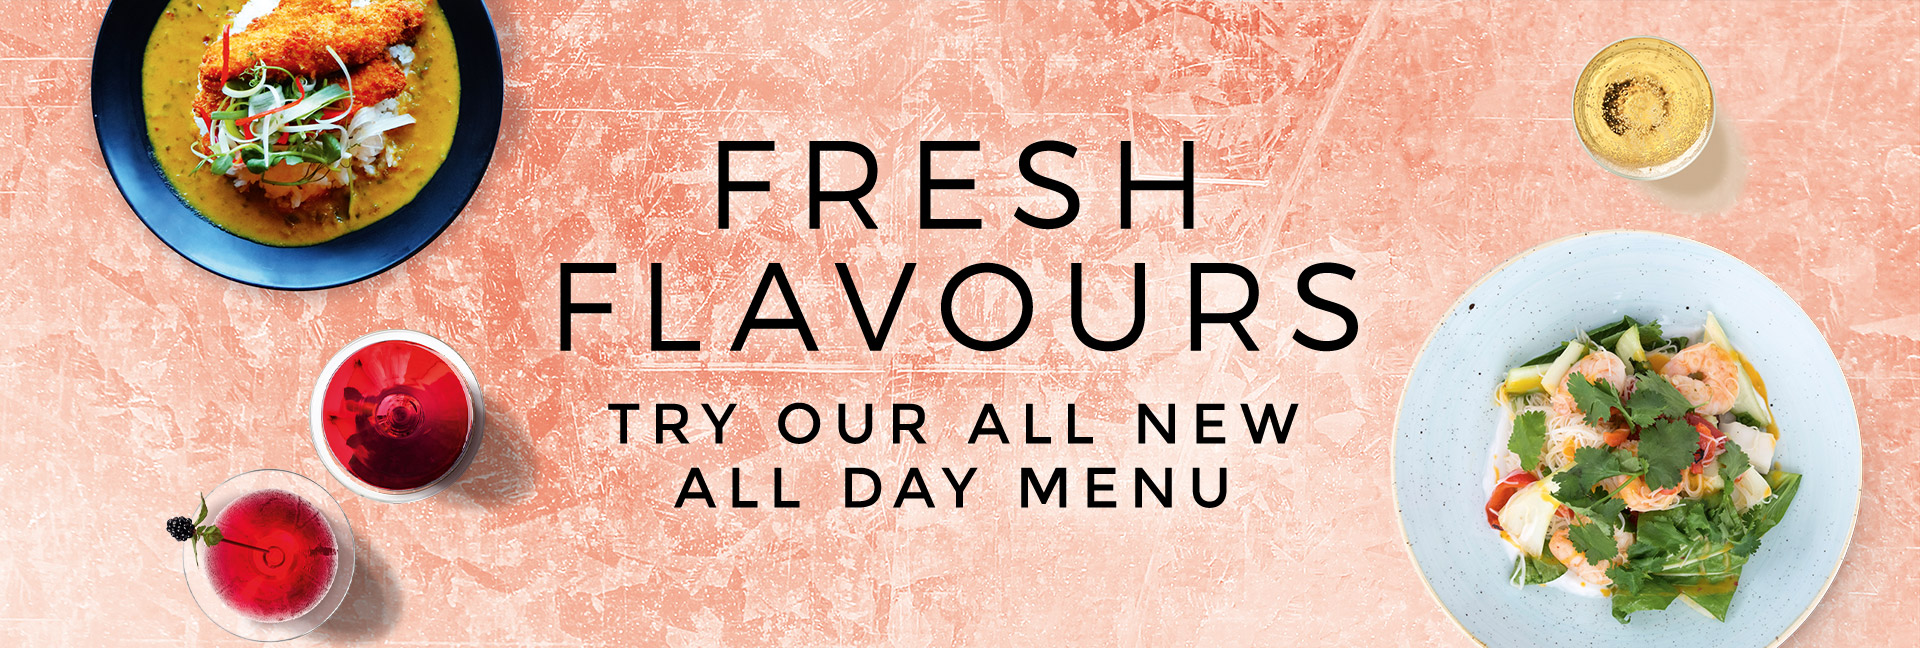 New Menus at All Bar One Picton Place